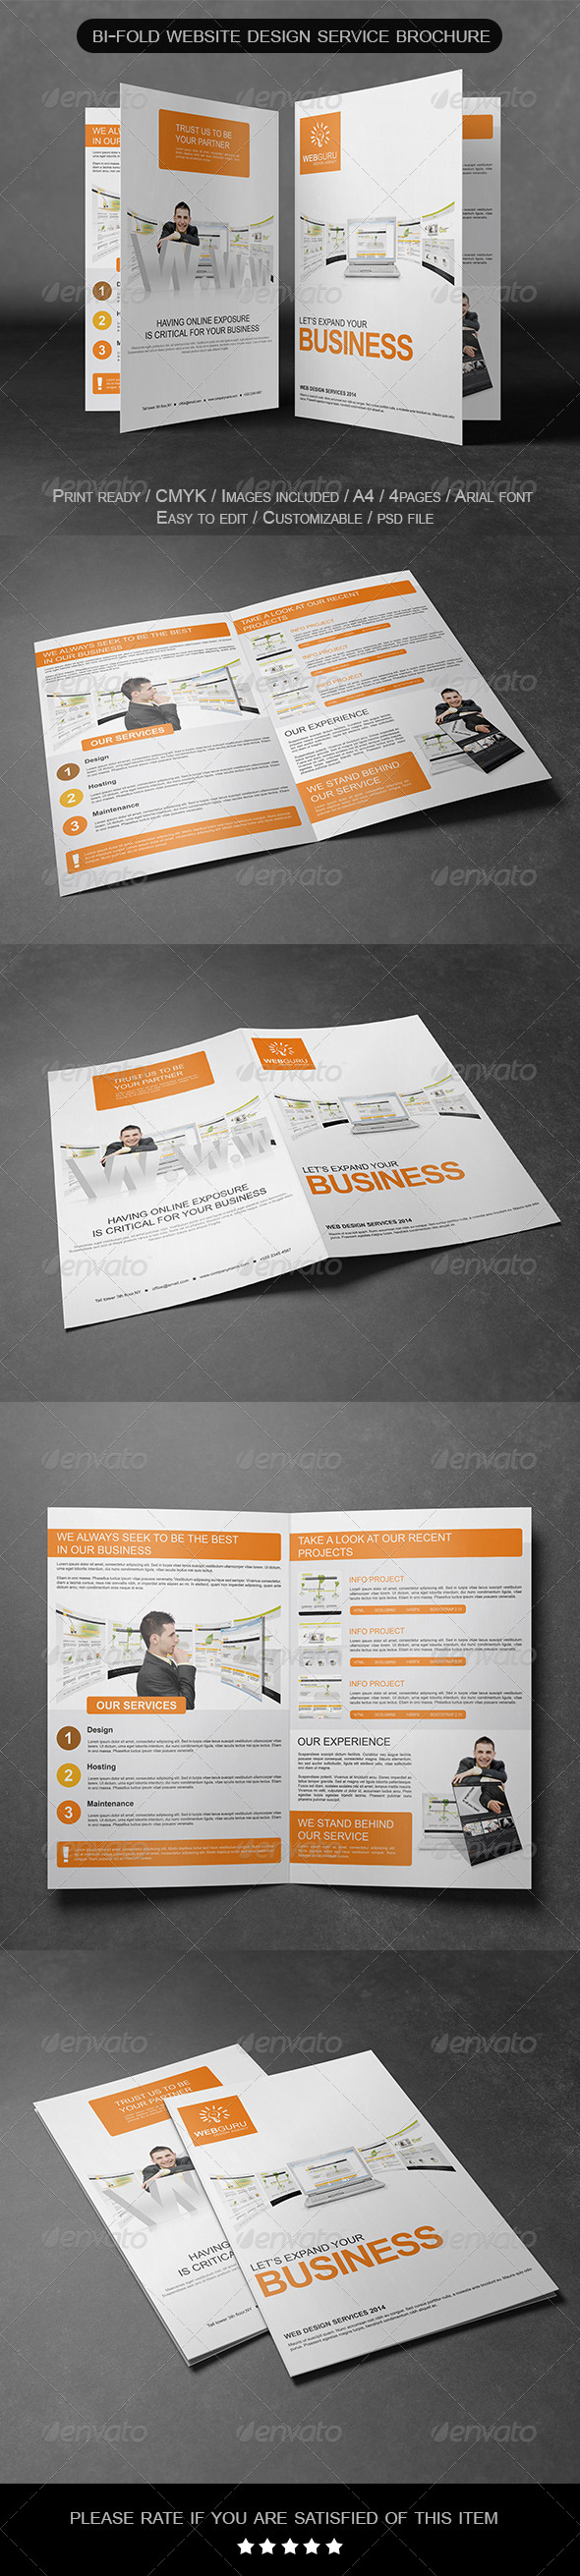 Bi-Fold Website Design Service Brochure - Informational Brochures